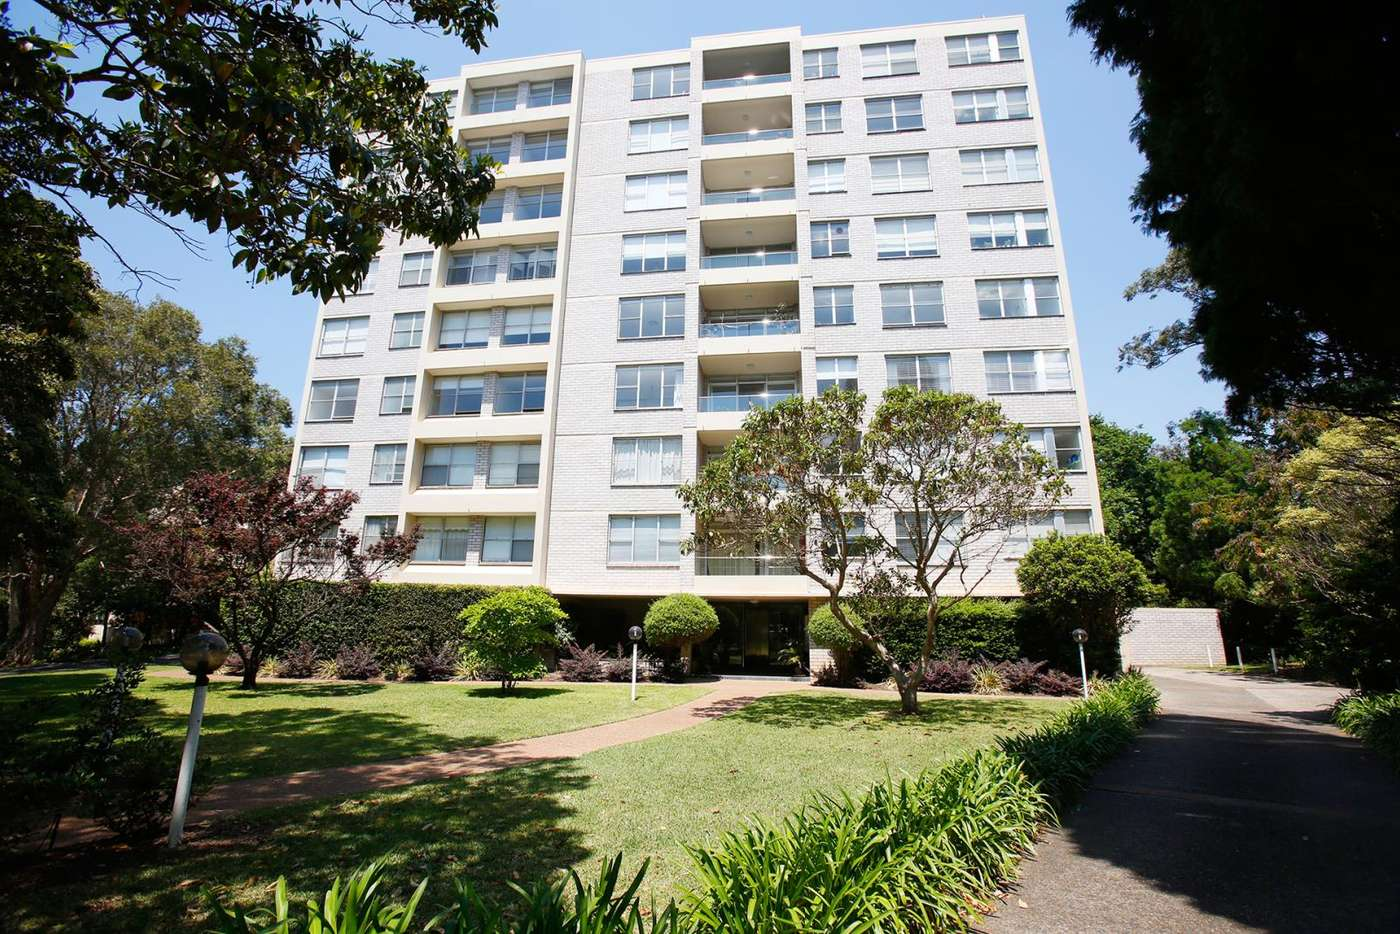 Main view of Homely apartment listing, 35/9 Hampden Avenue, Cremorne NSW 2090